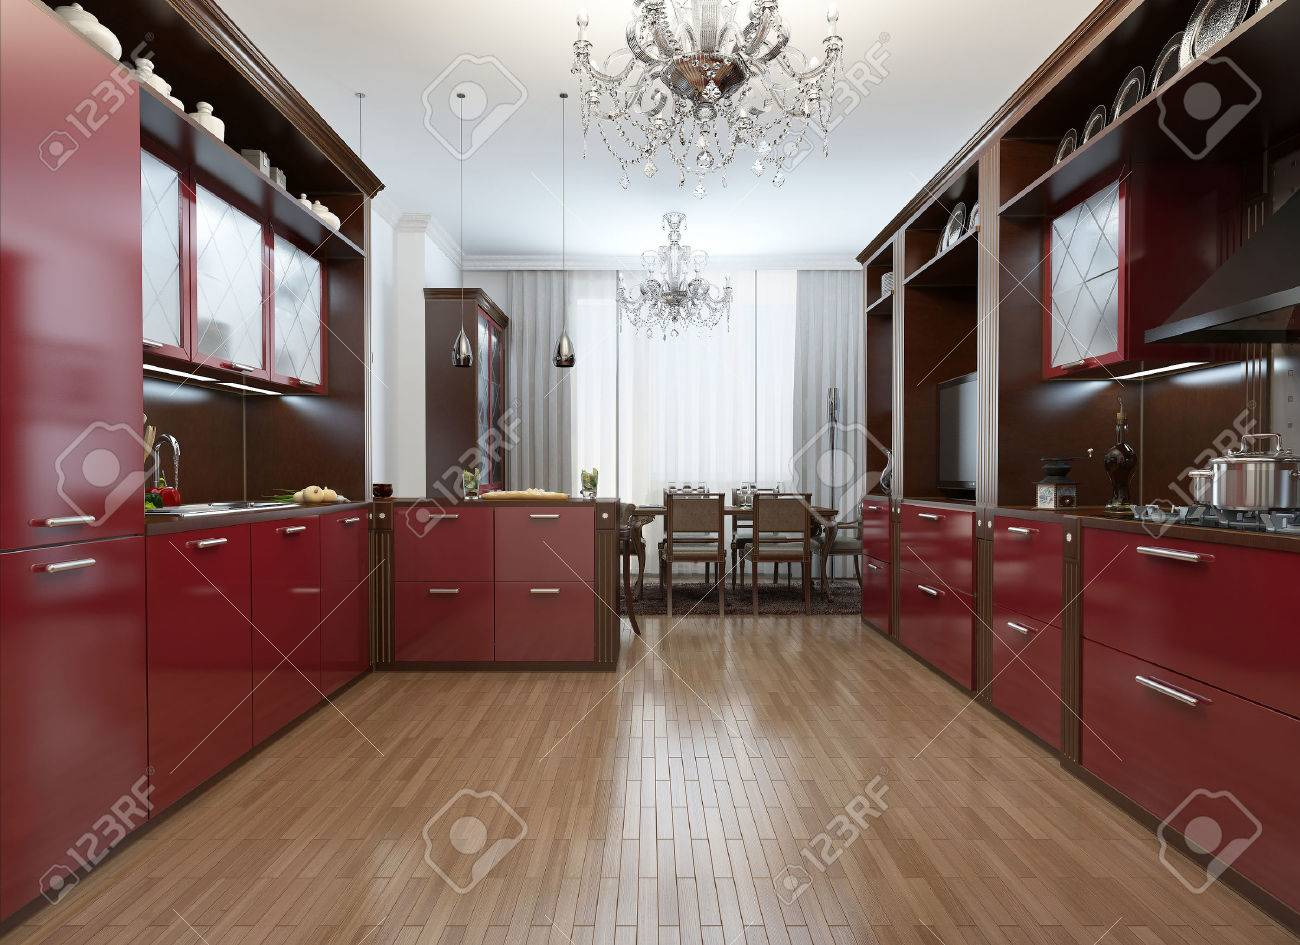 Kitchen in the Art Deco style, 17d images